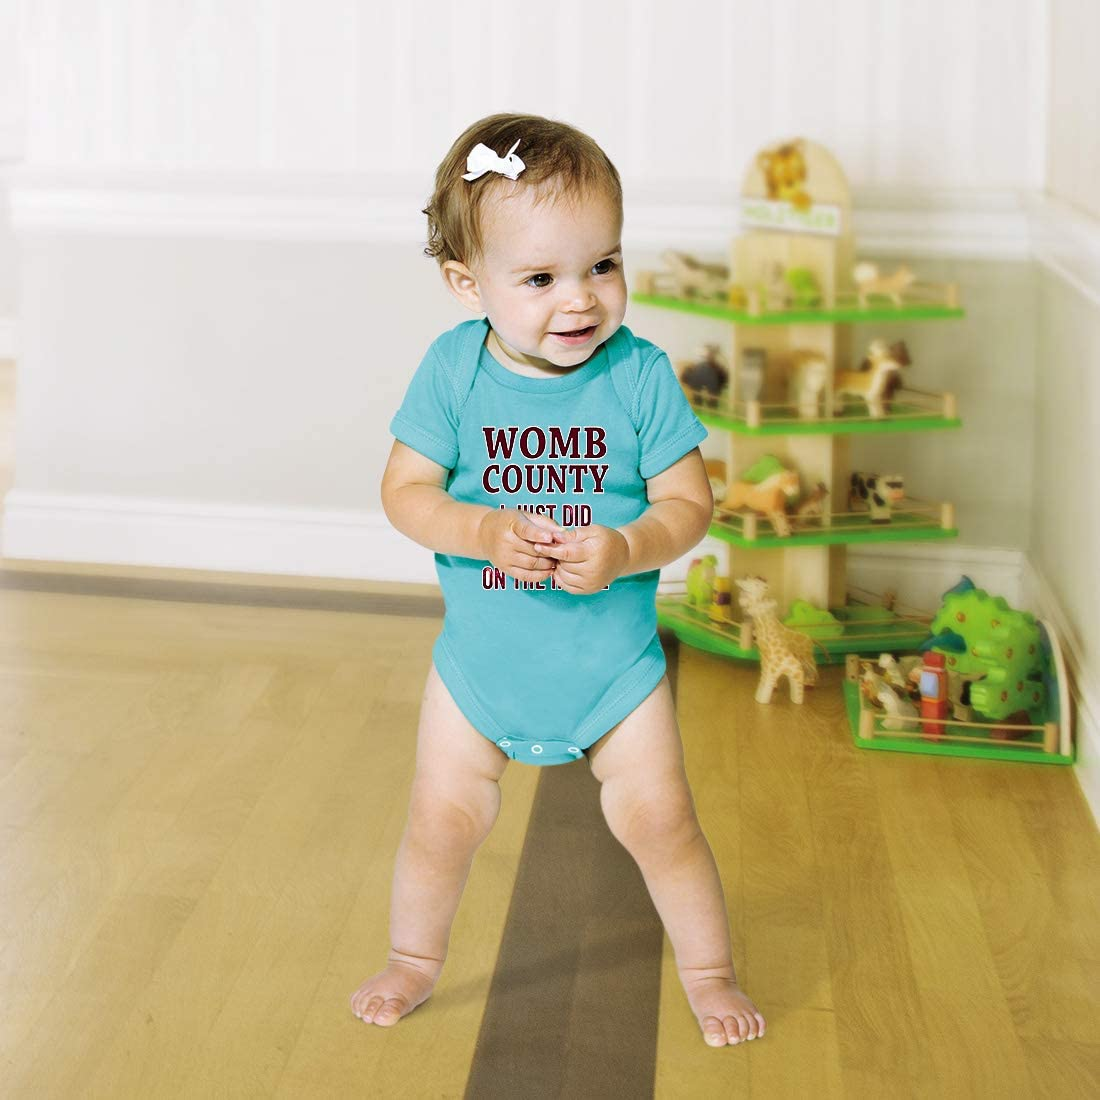 Cute Rascals Womb County I Just Did 9 Months On The Inside Cotton Baby Bodysuit One Piece